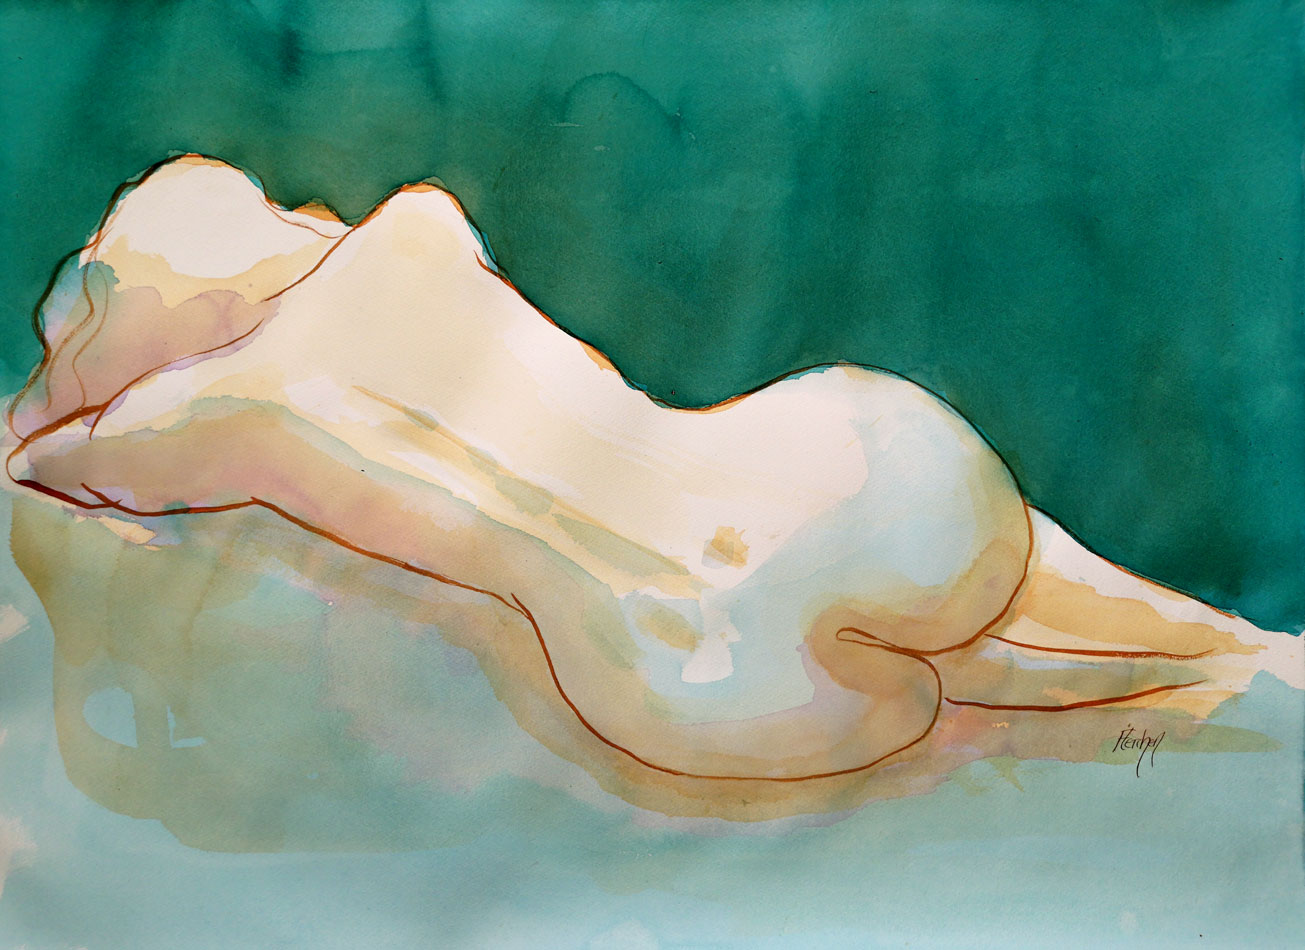 drawing-of-a-sleeping-nude-female-model